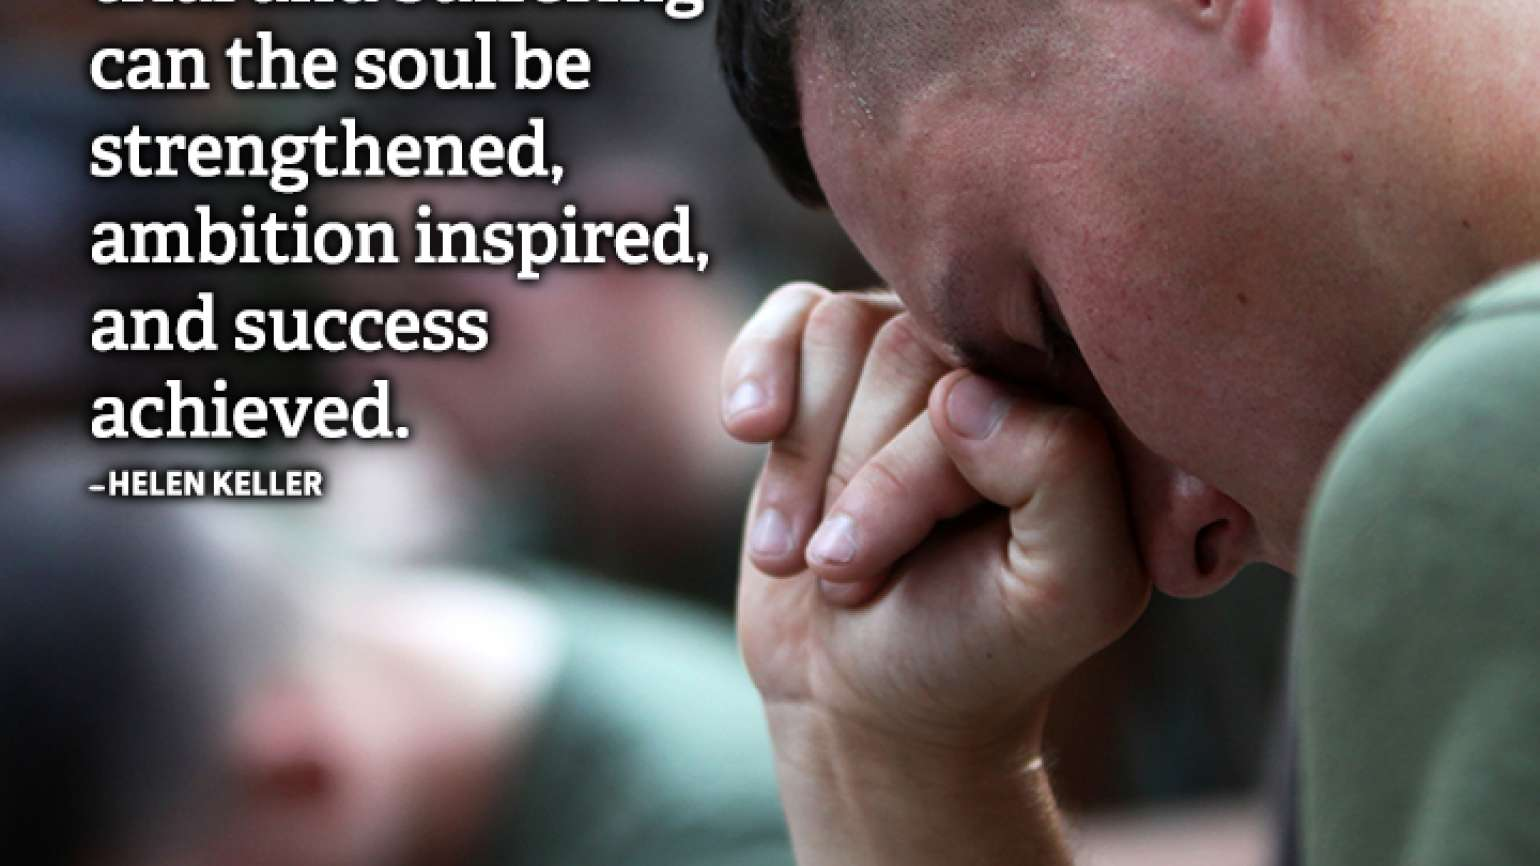 Success quote Helen Keller character ease quiet trail suffering strength ambition success